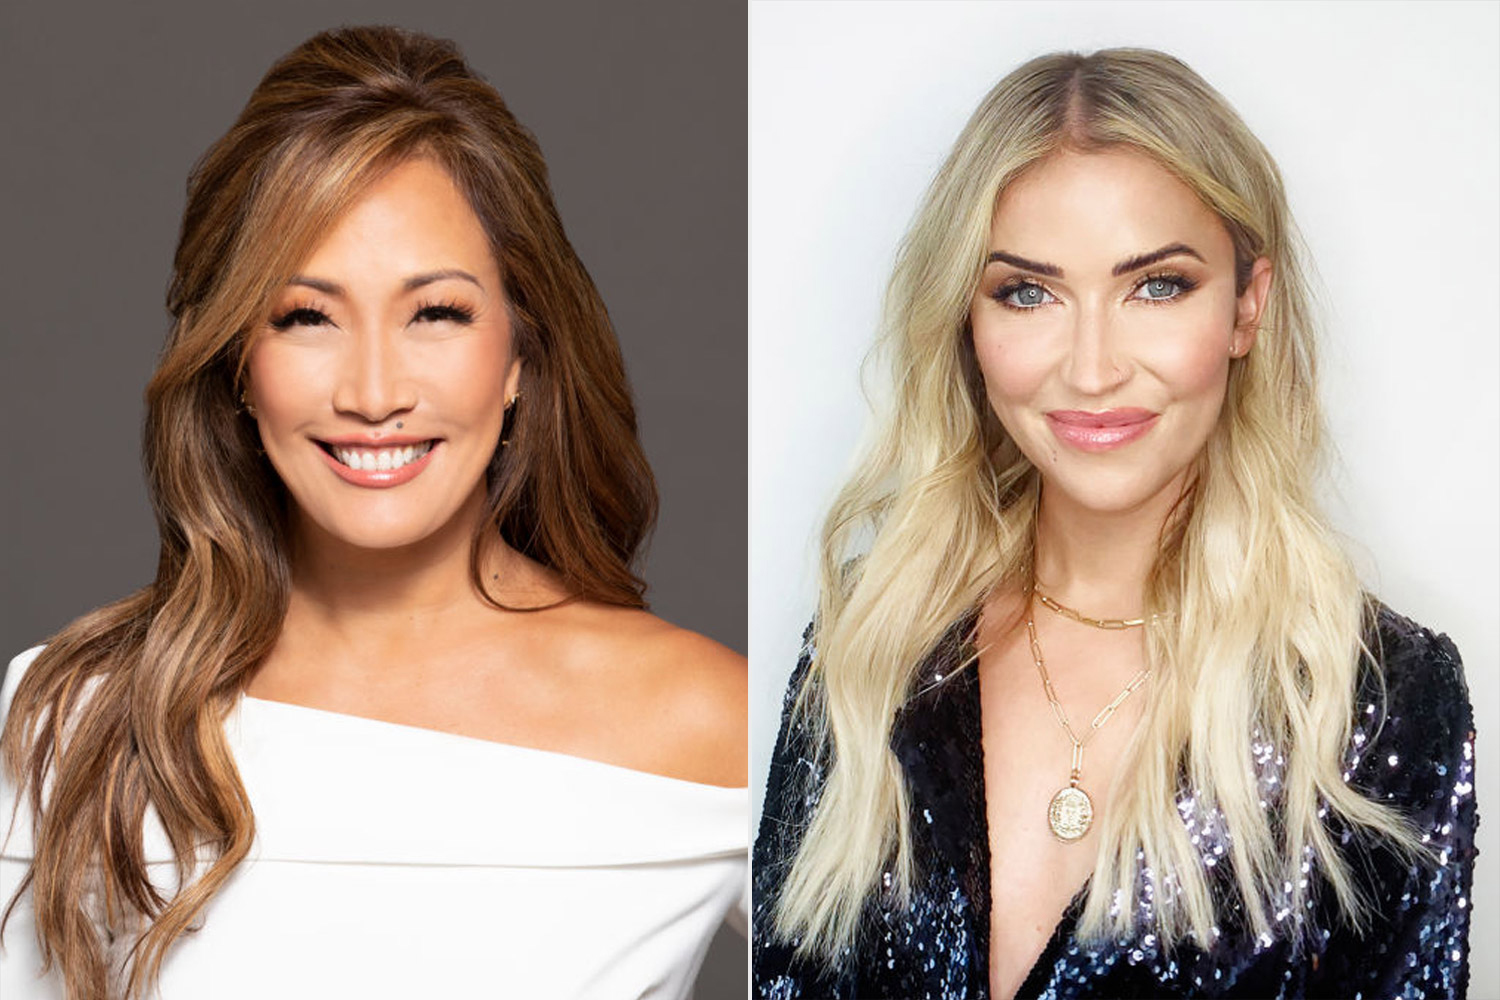 Carrie Ann Inaba and Kaitlyn Bristowe